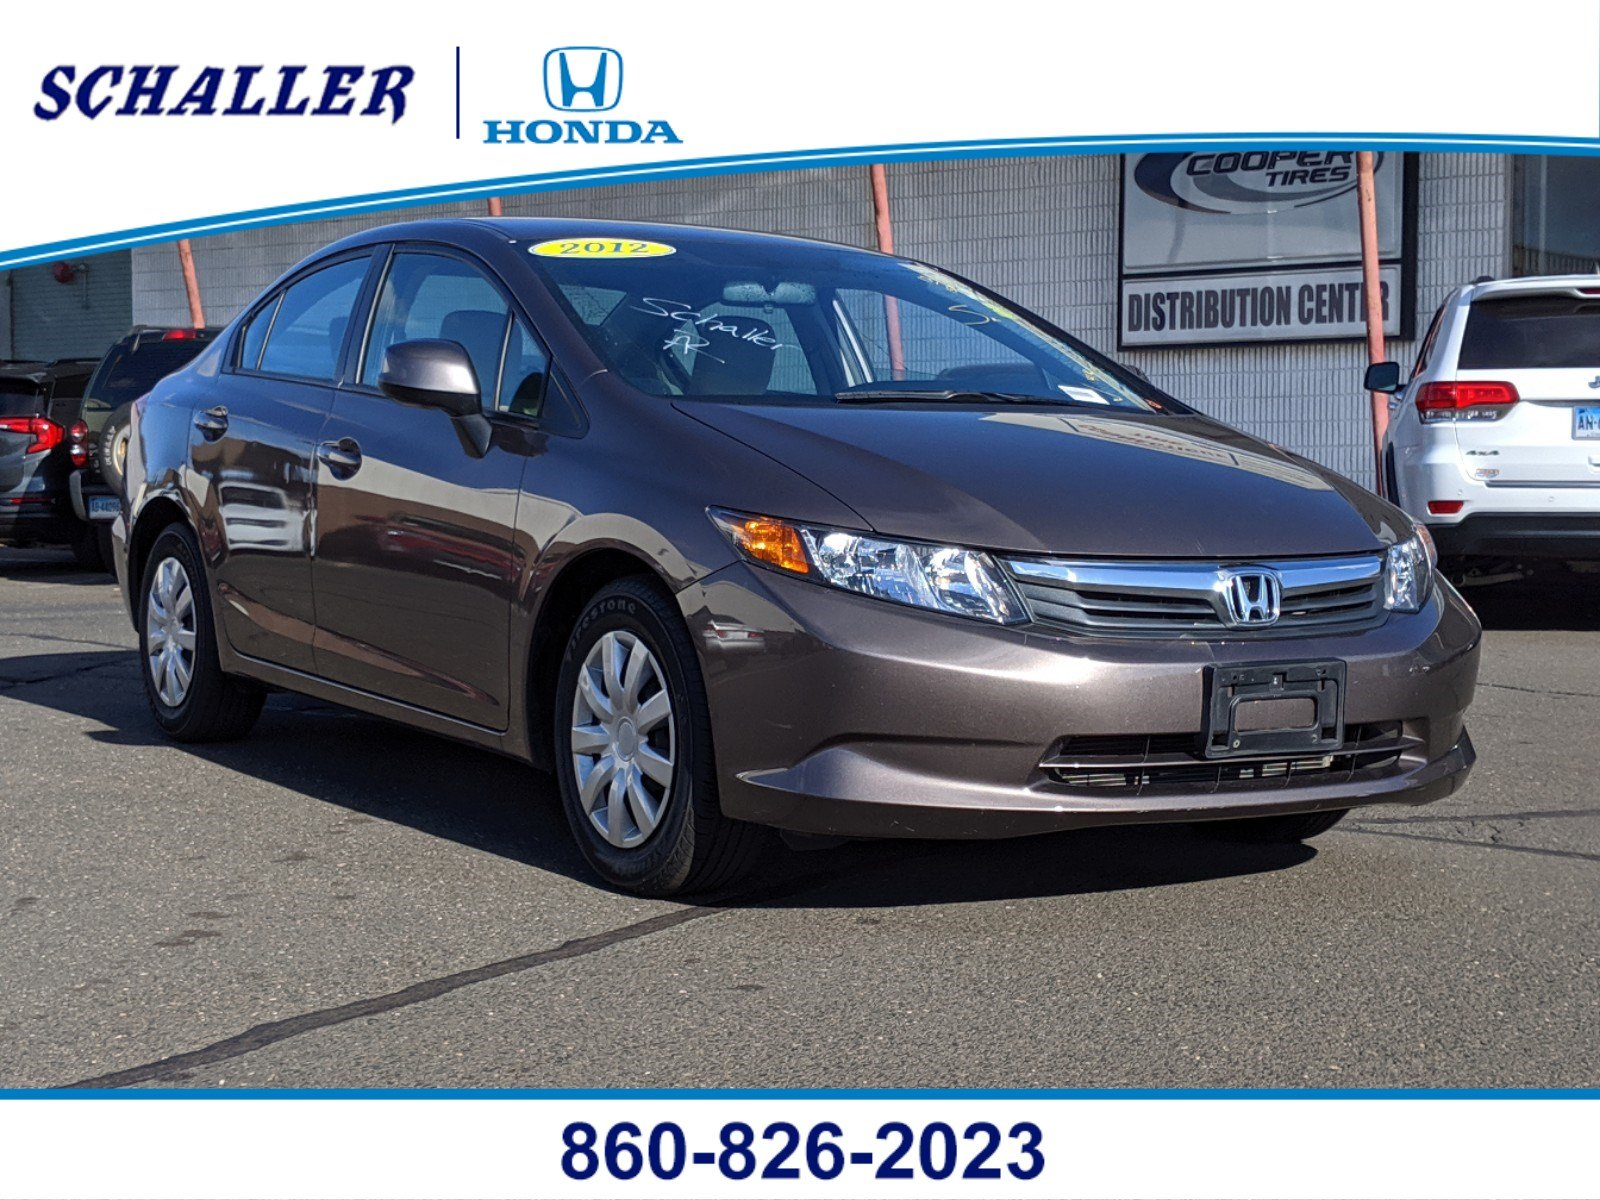 Pre-Owned 2012 Honda Civic Sedan LX